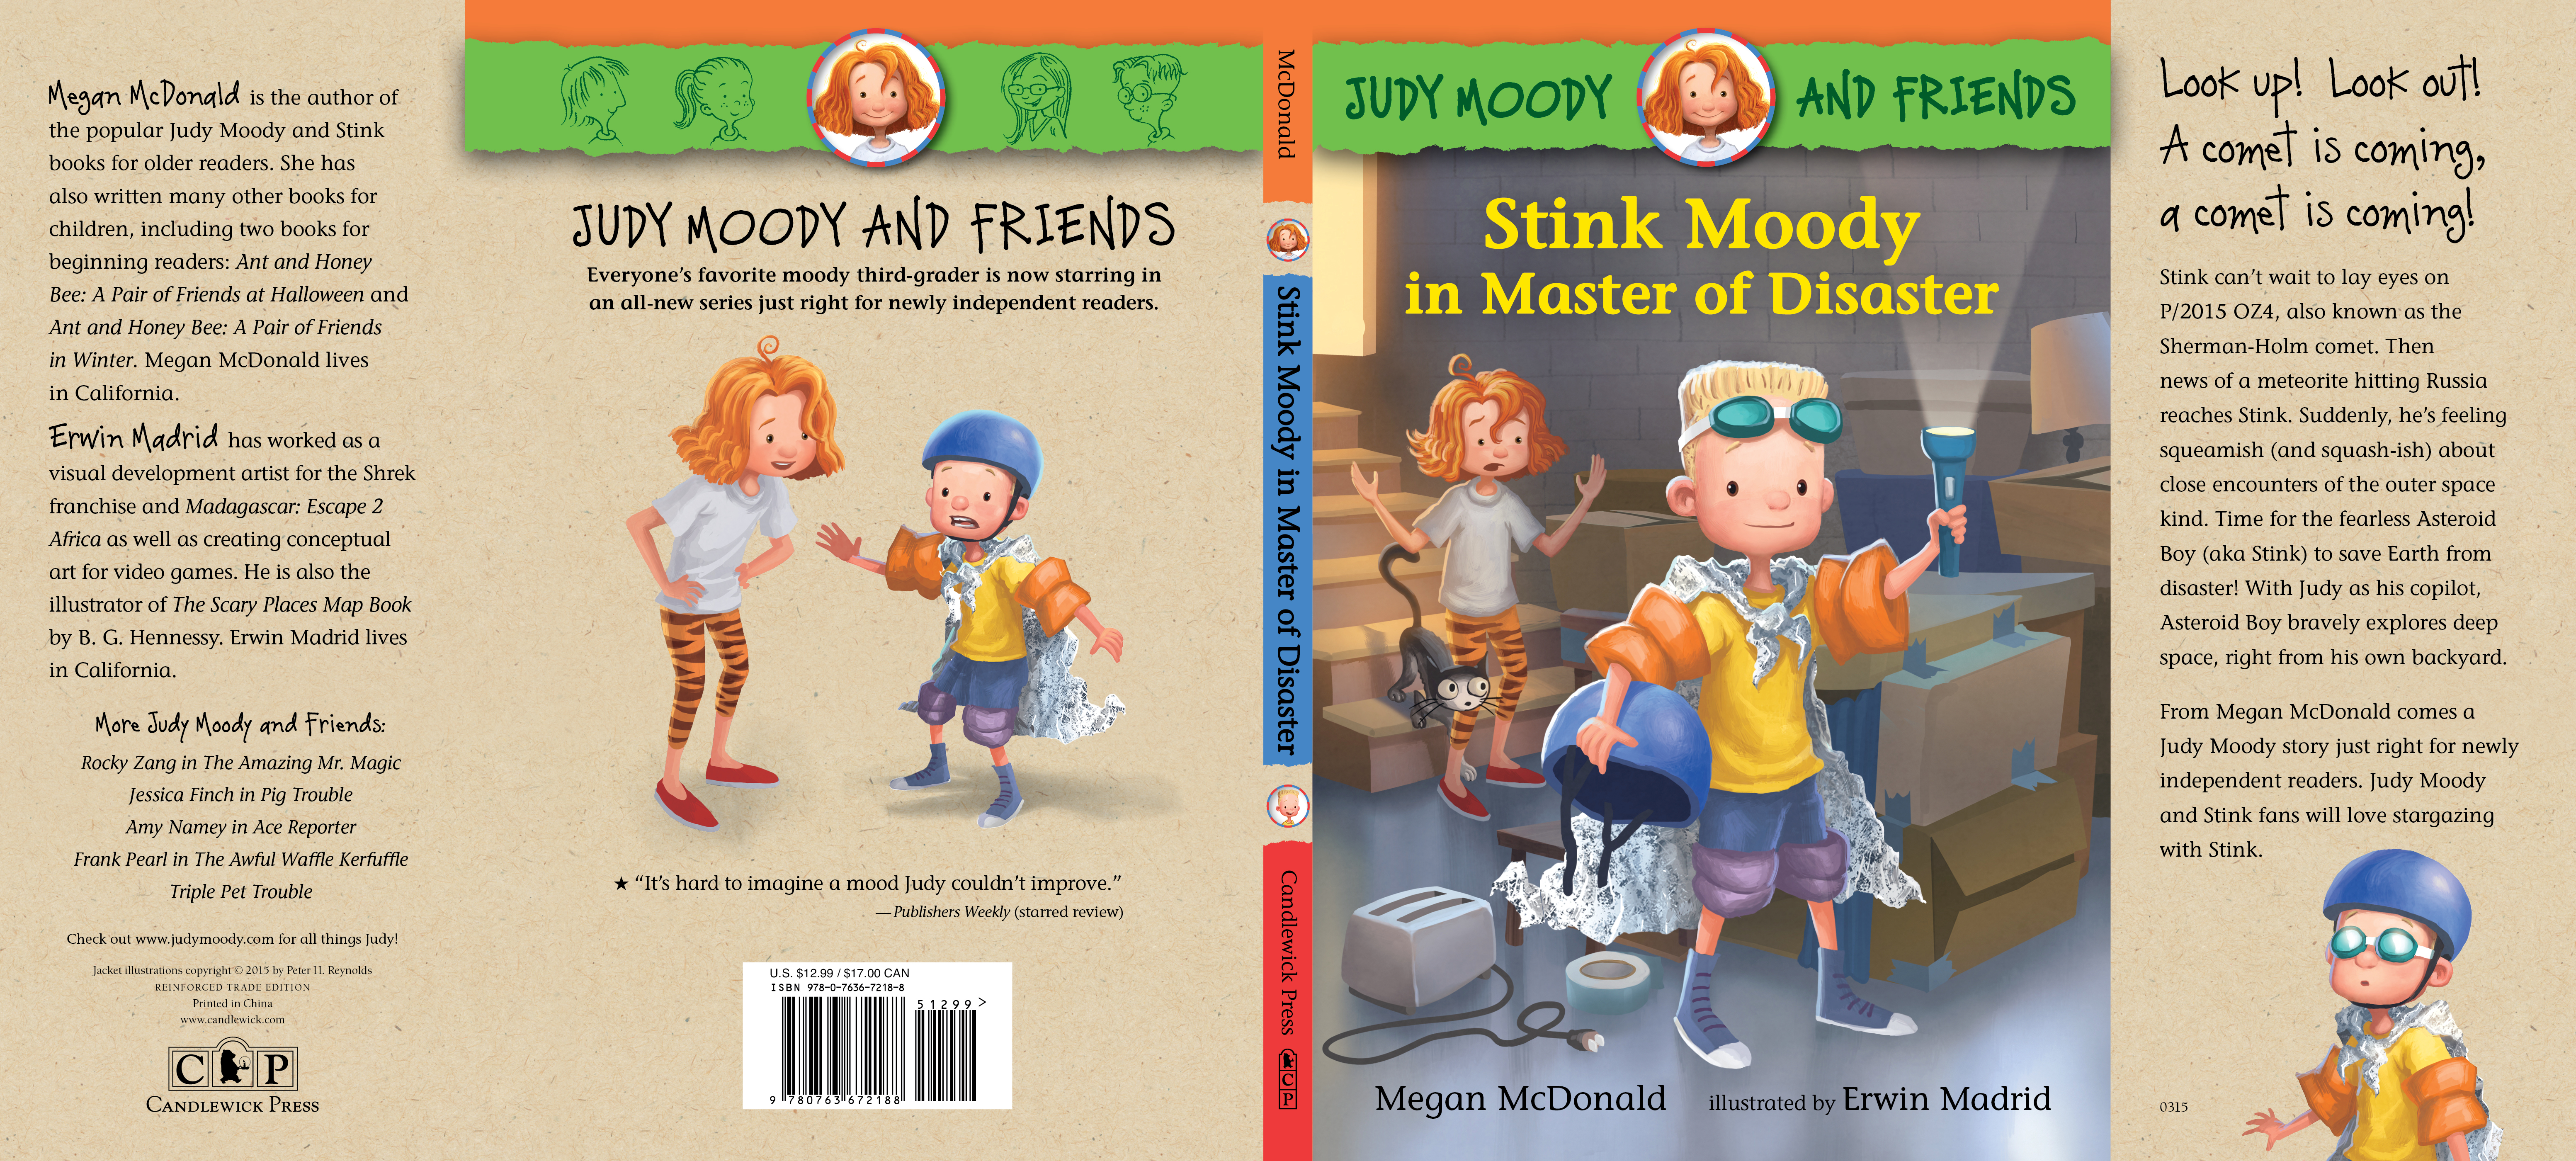 Full jacket for STINK MOODY IN THE MASTER OF DISASTER